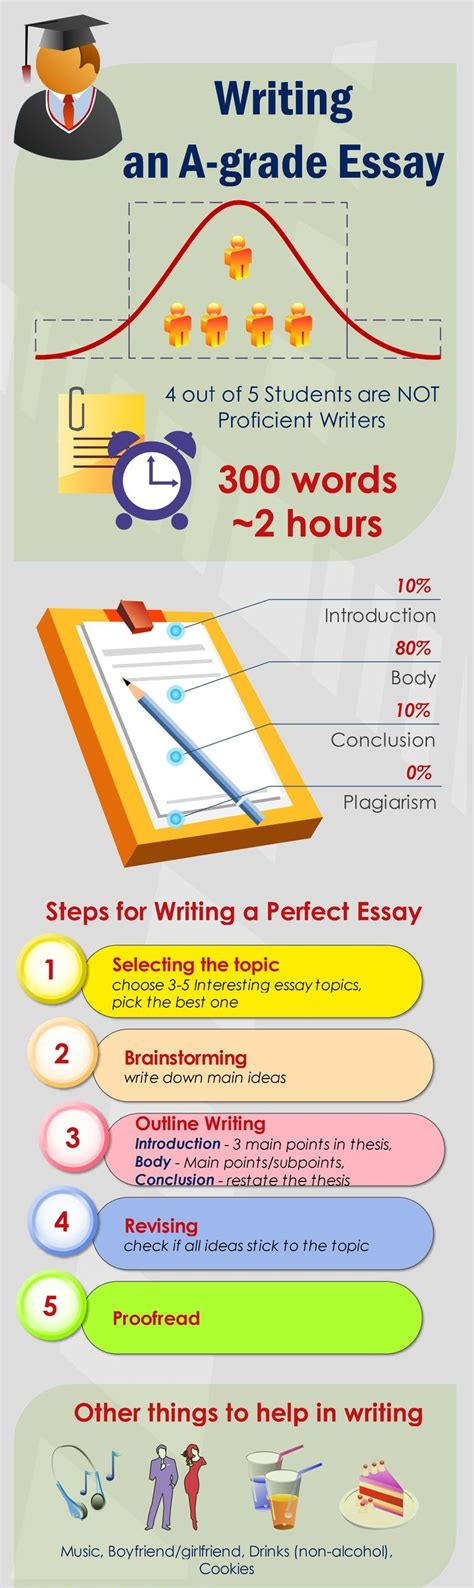 tips on writing a paper academic help page 2 intel writers